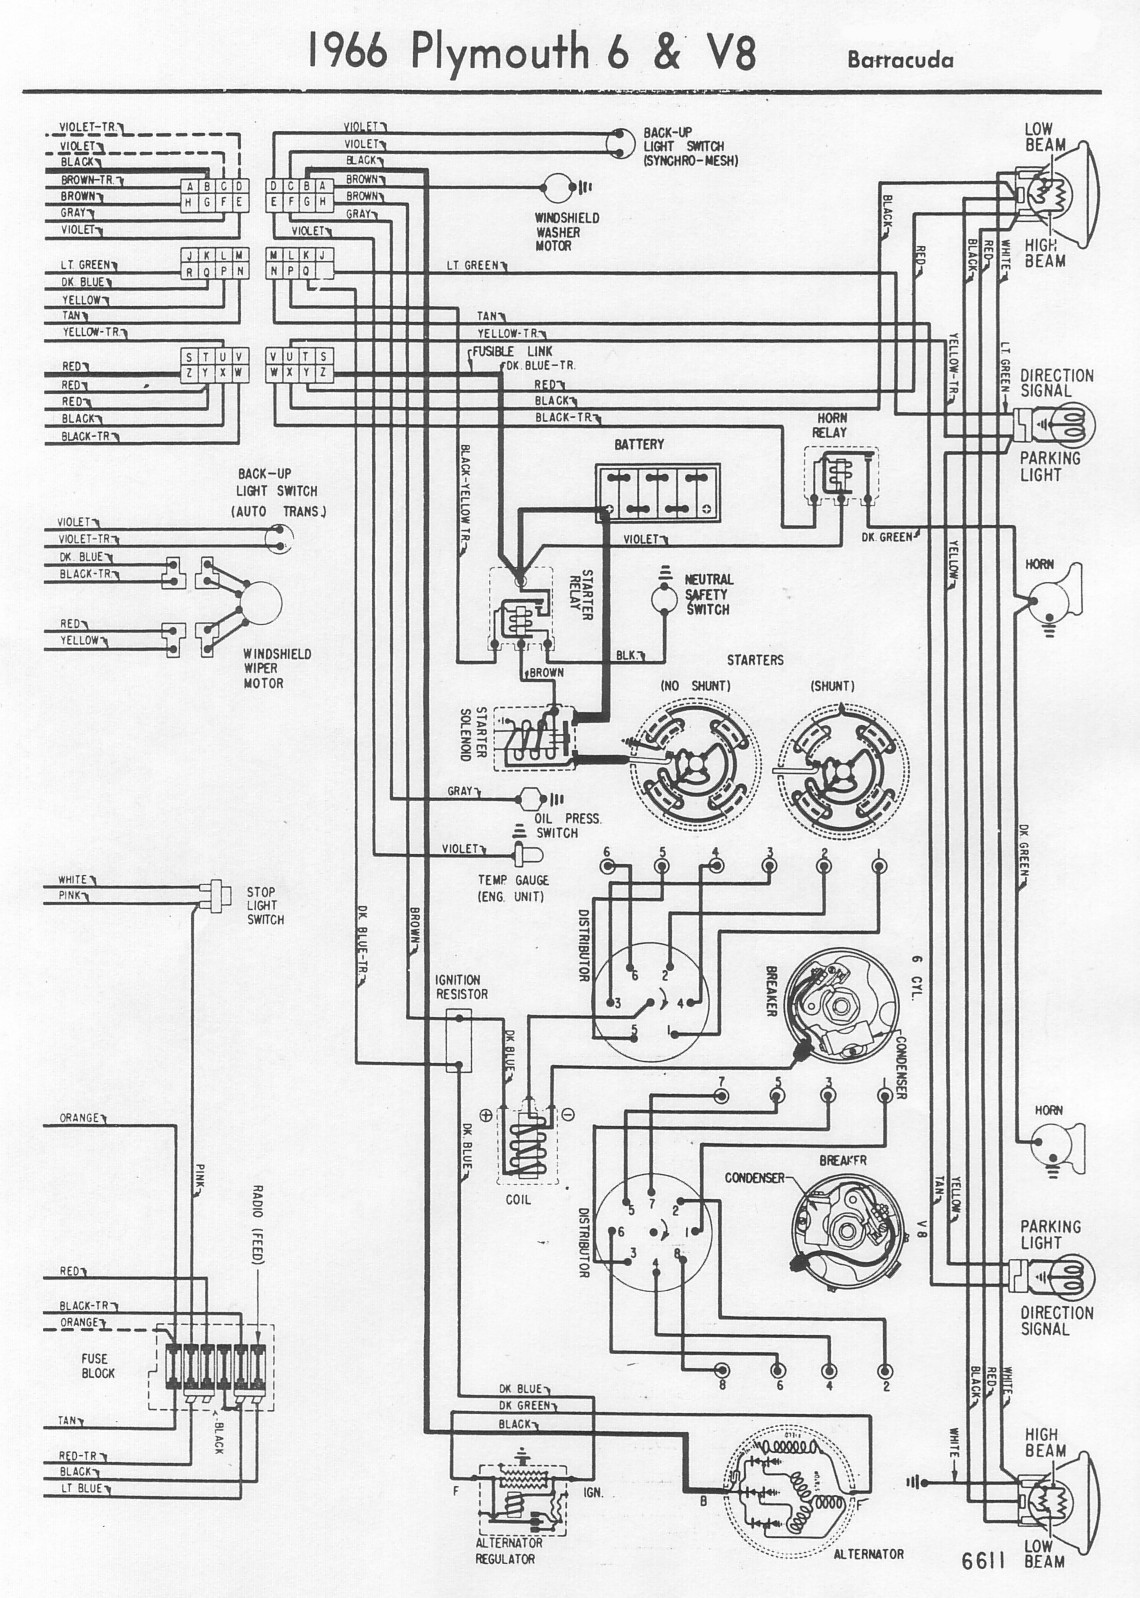 chrysler valiant wiring diagram